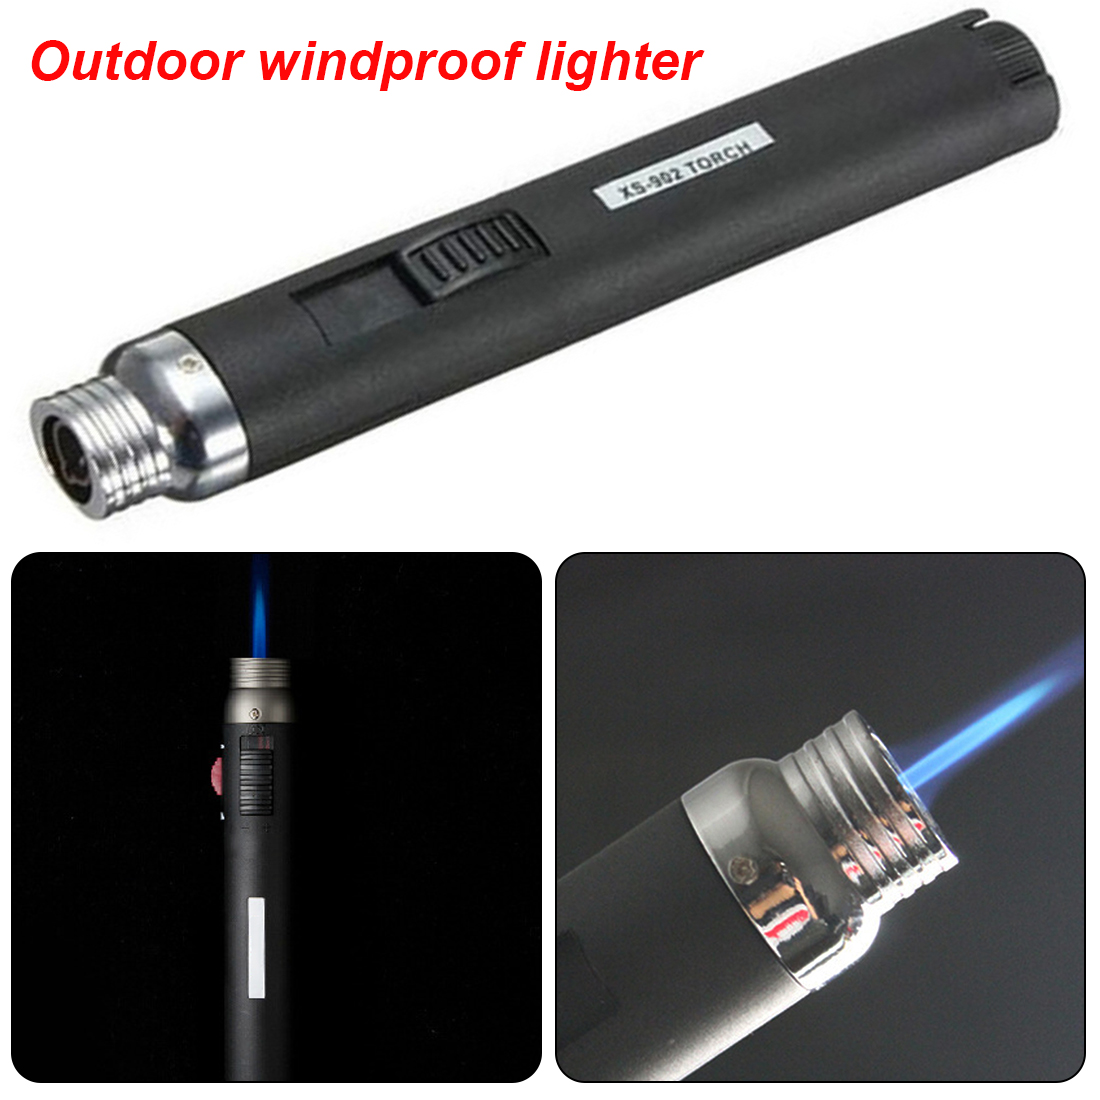 Outdoor Supplies Welding Torches Lighter Torch Jet Flame Portable Pencil Butane Gas Refillable Fuel Welding Soldering Pen